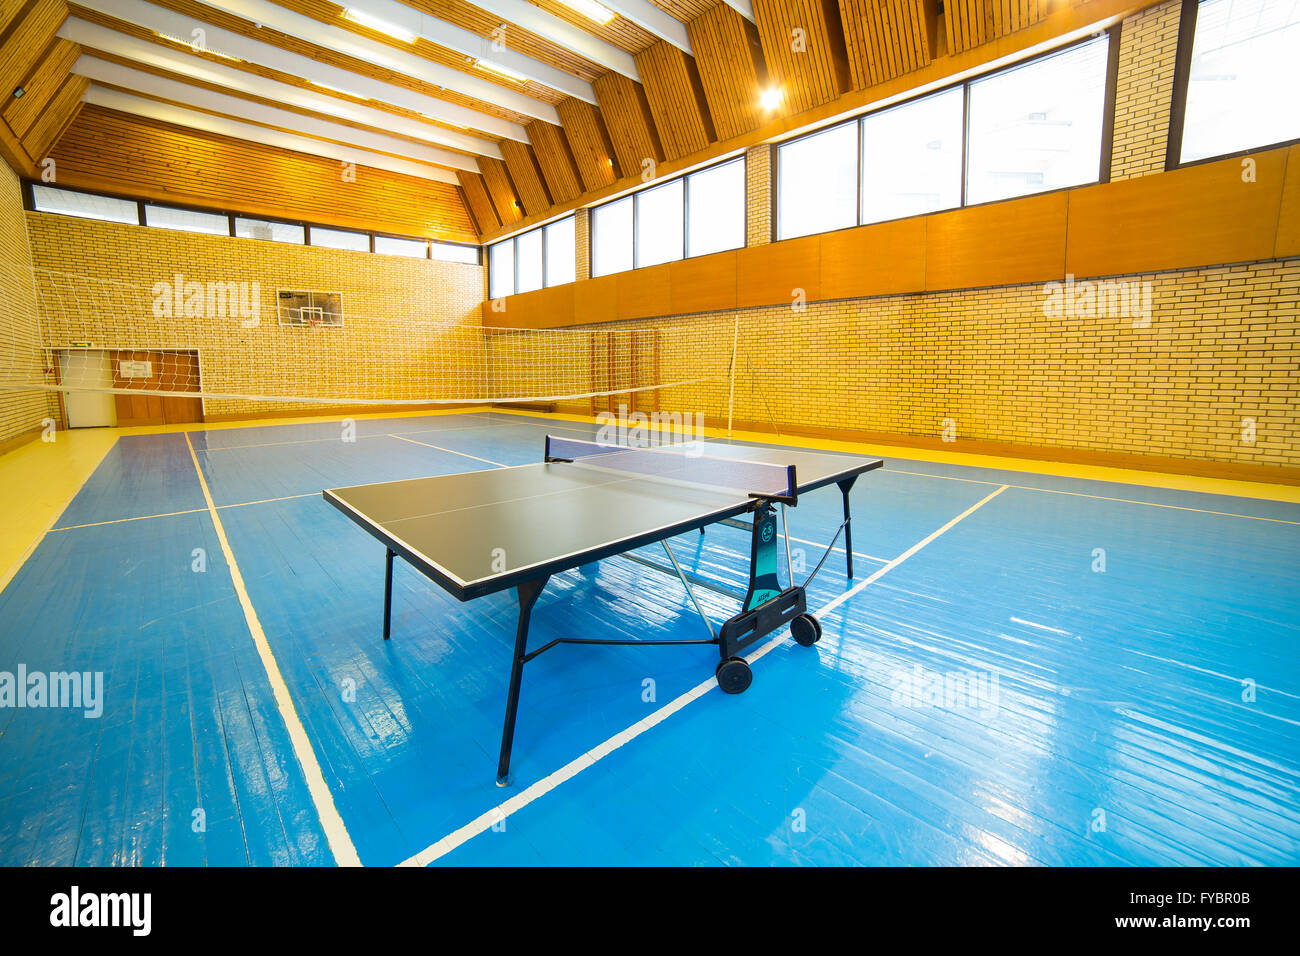 Gym Hall Empty Space With Table Tennis